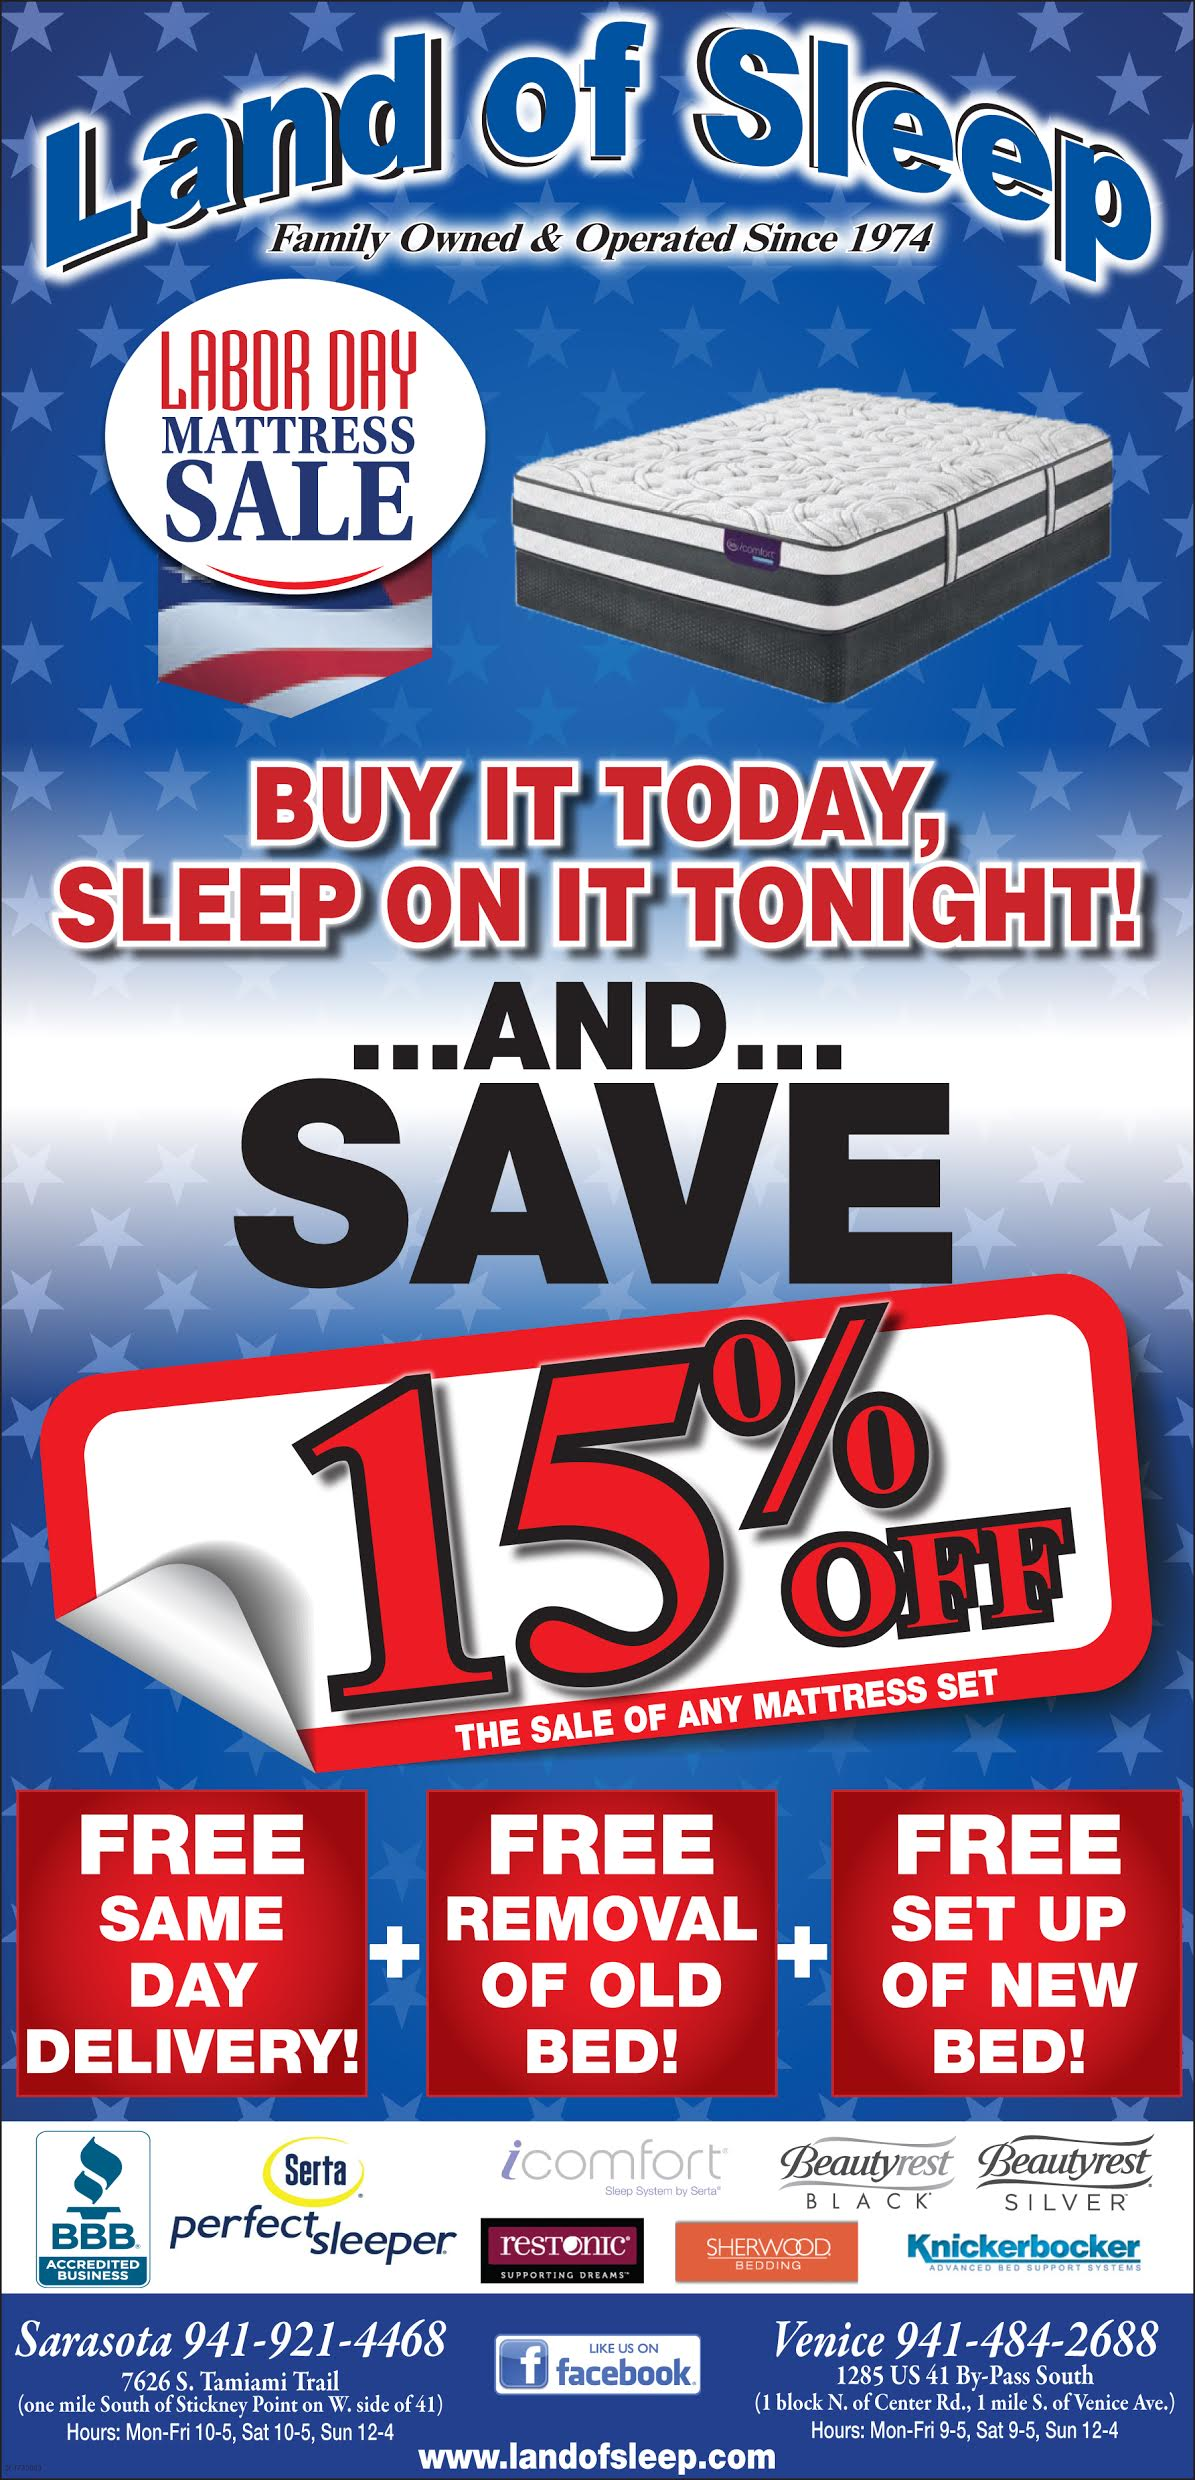 stop by land of sleep this weekend for our labor day mattress sale get free same day delivery and set up of your new mattress and free removal of your old - Same Day Mattress Delivery